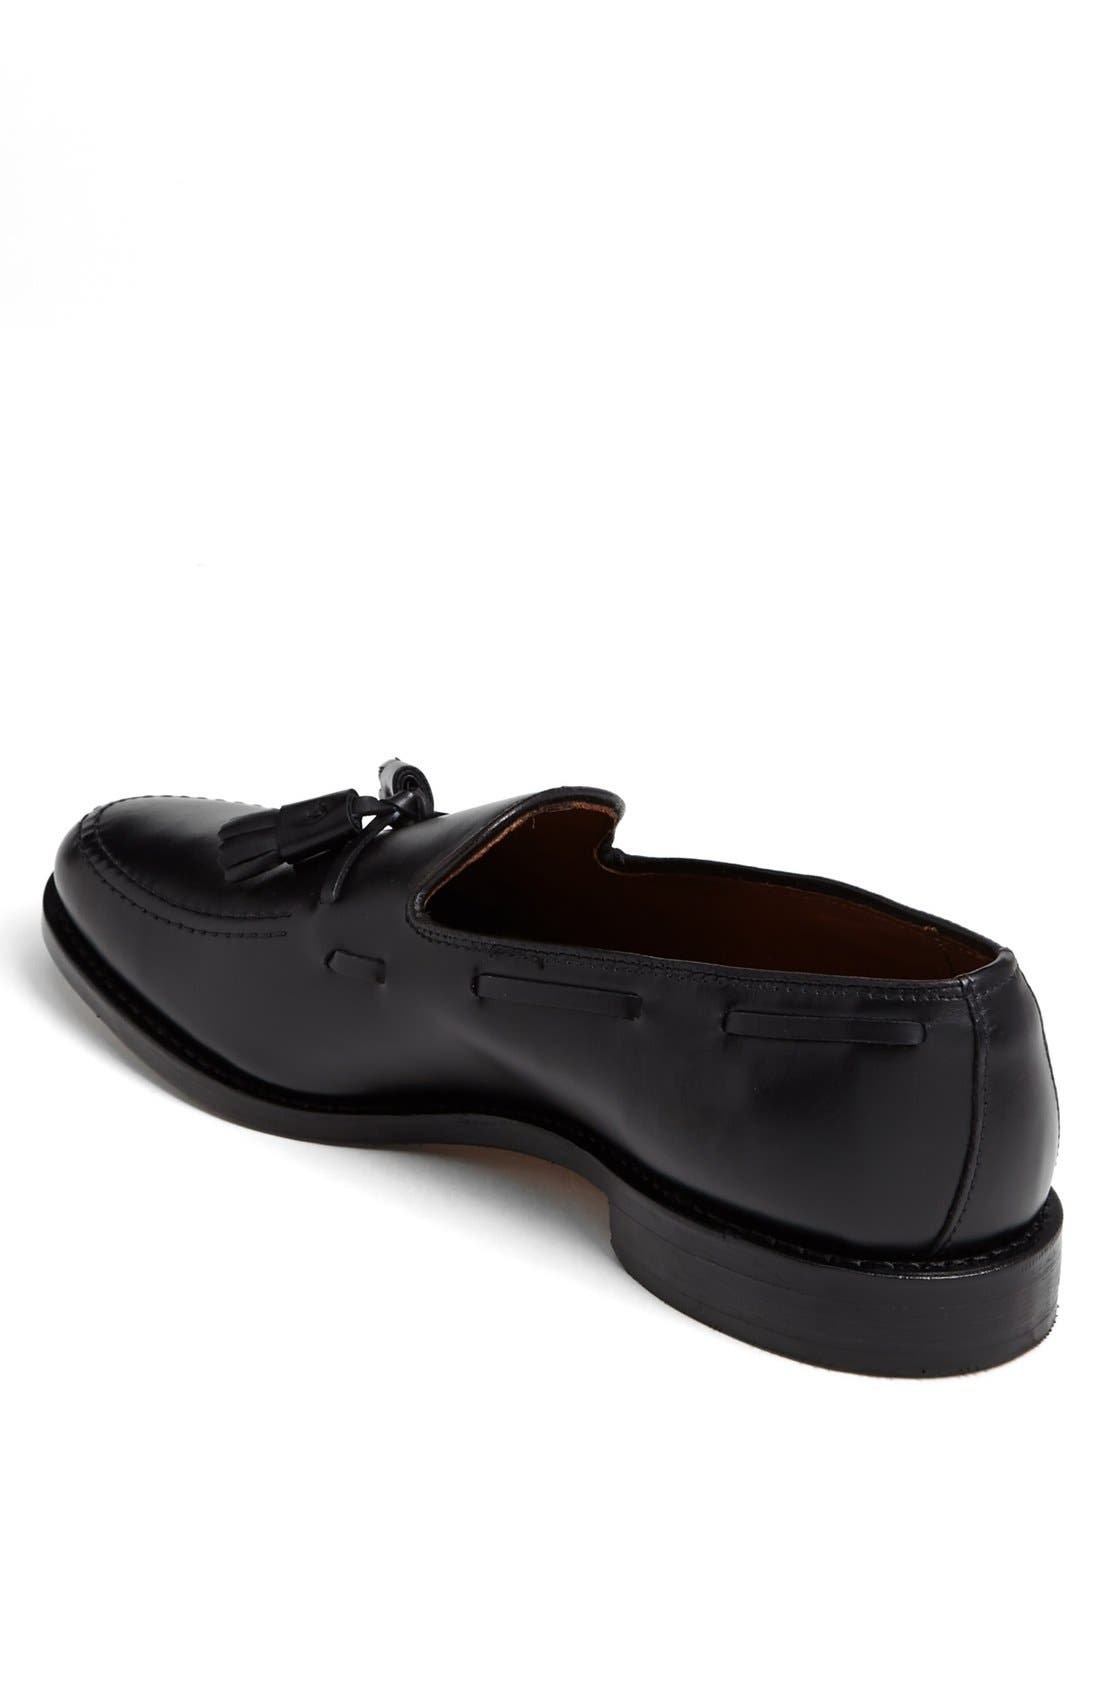 Alternate Image 2  - Allen Edmonds 'Grayson' Tassel Loafer (Men)